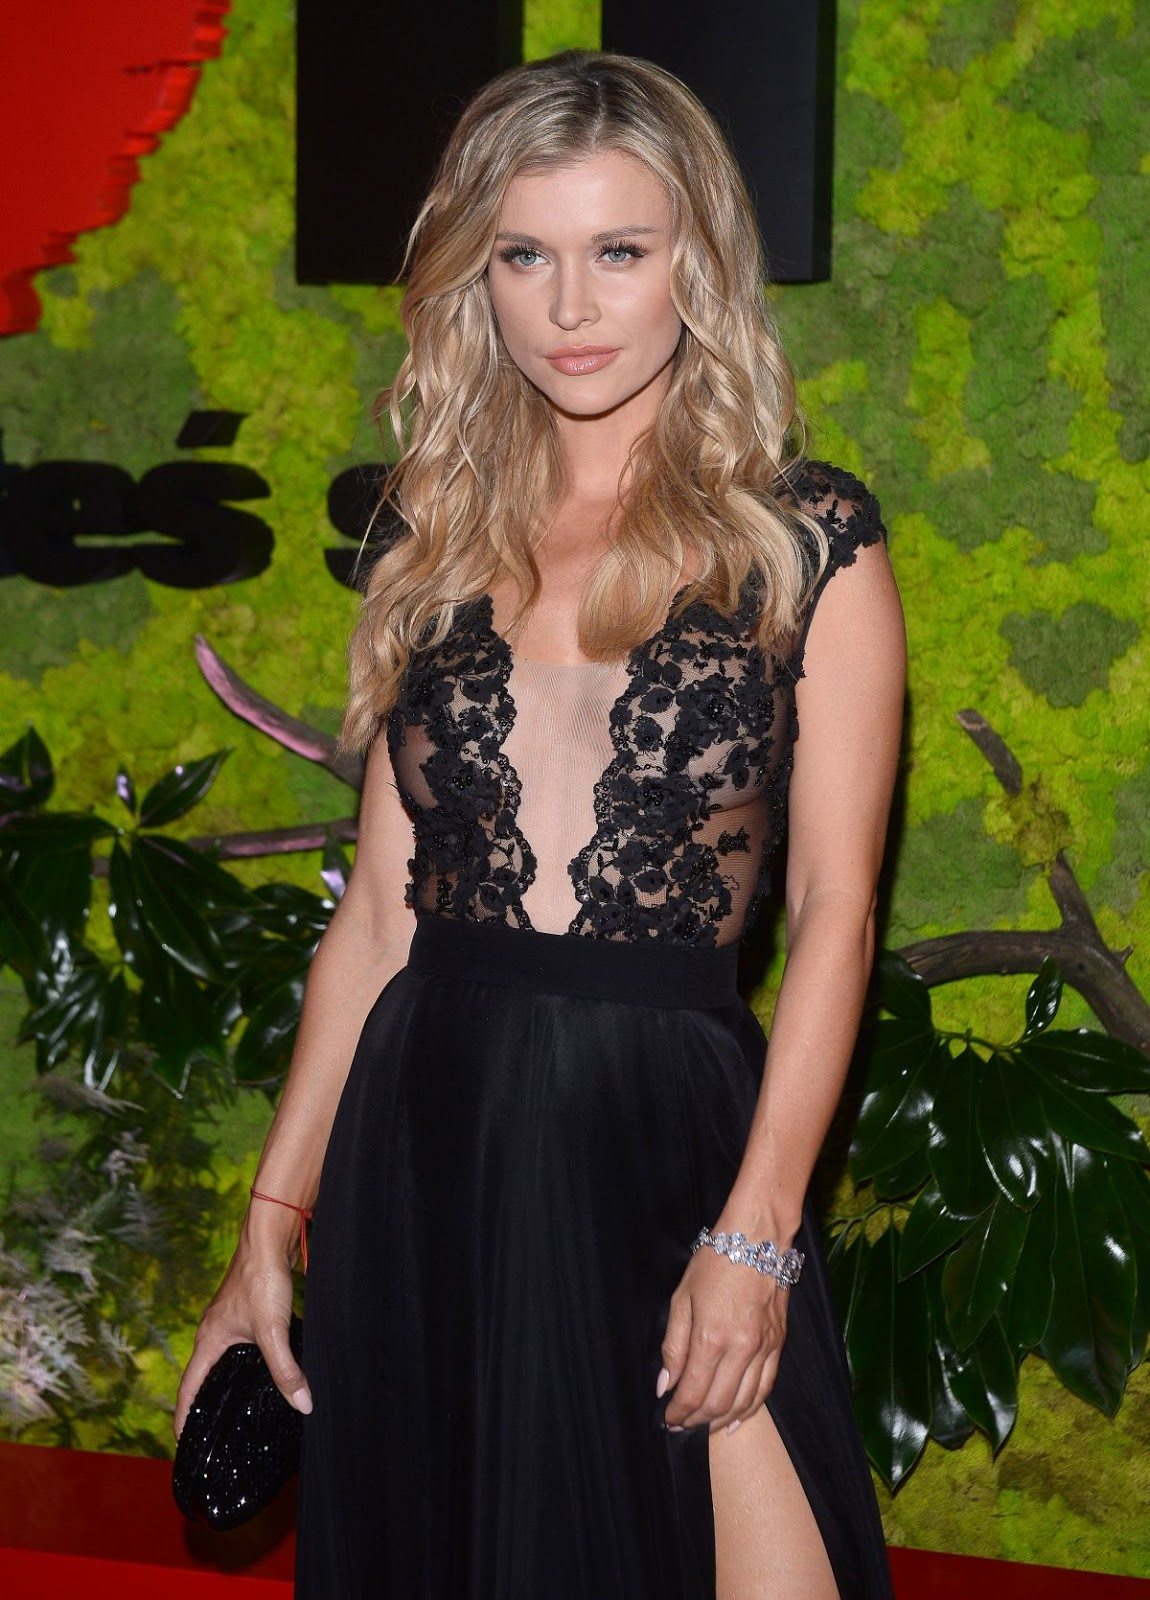 HQ Wallpapers of 'The Dog Problem' actress Joanna Krupa At TVN Gala Foundation In Warsaw